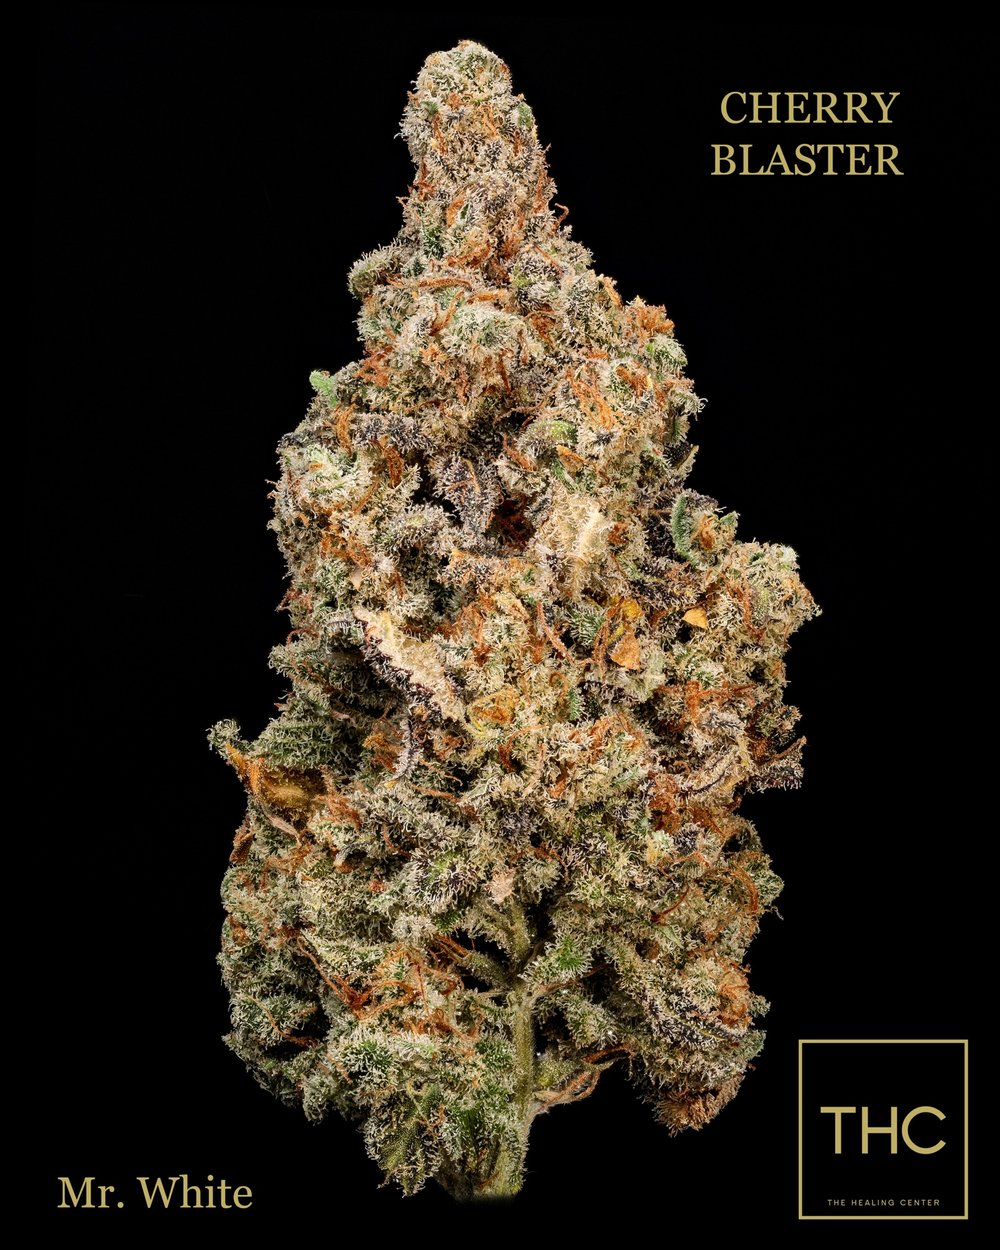 Cherry Blaster Mr. White THC.jpg